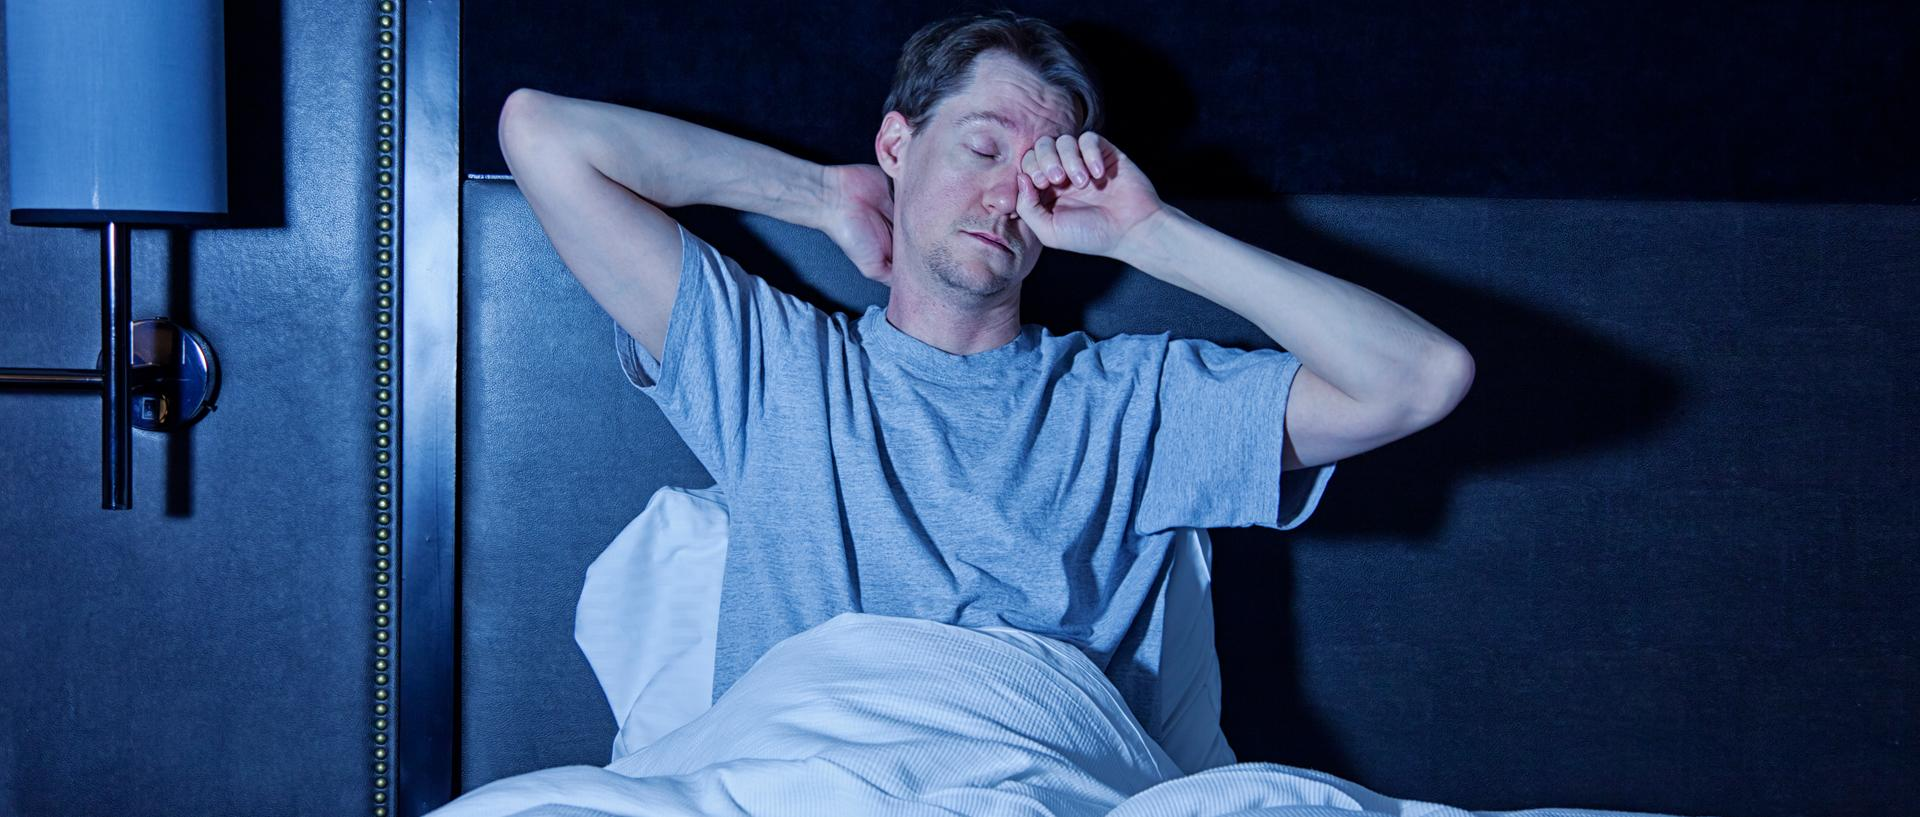 Why Chronic Insomnia and Other Sleep Problems Get Ignored